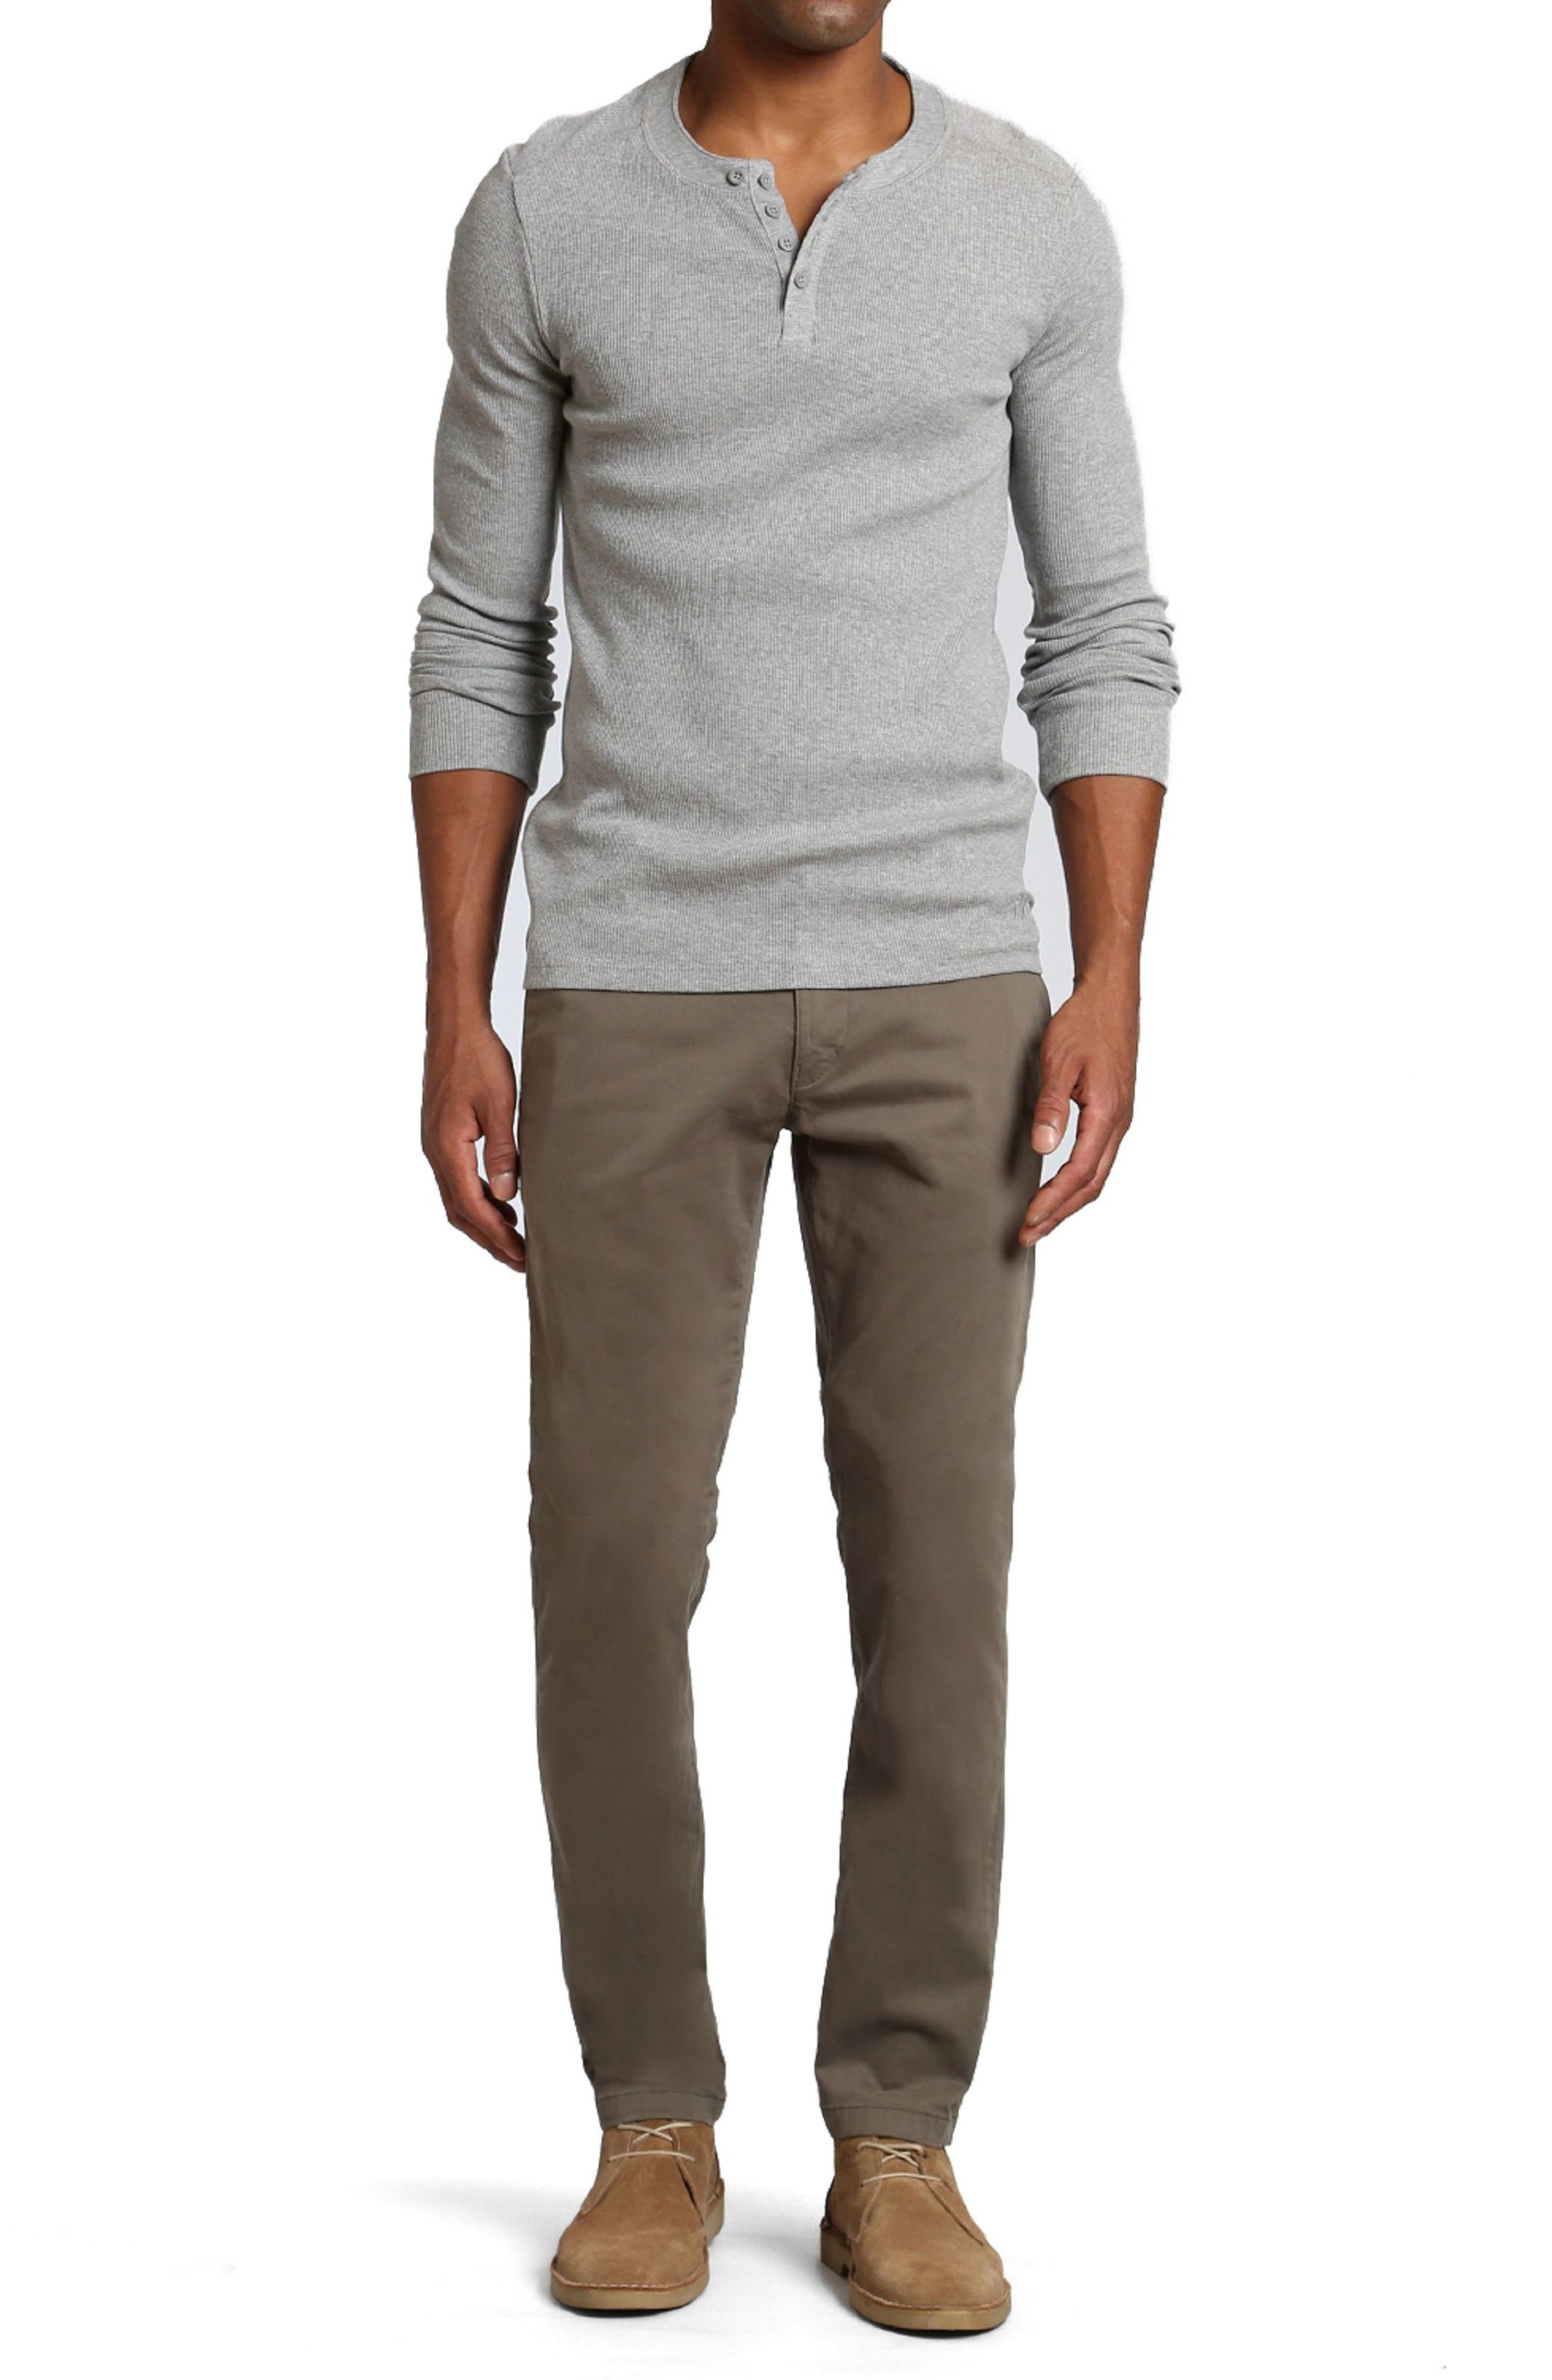 Johnny Twill Pants,                             Alternate thumbnail 4, color,                             Dusty Olive Twill